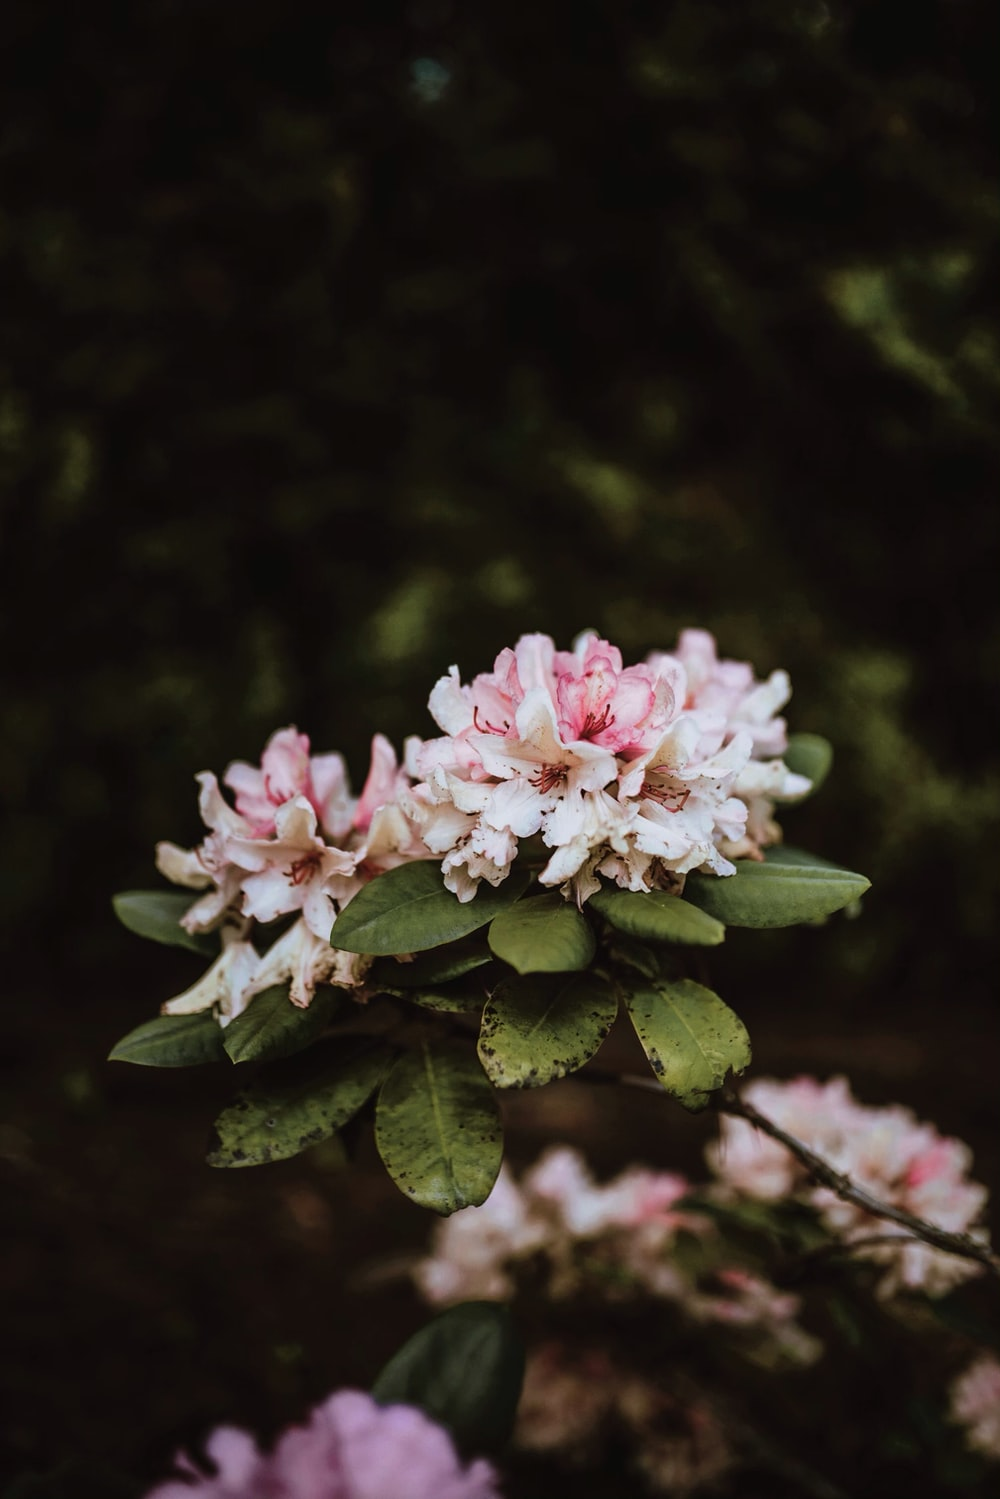 shallow focus photo of white and pink flowers